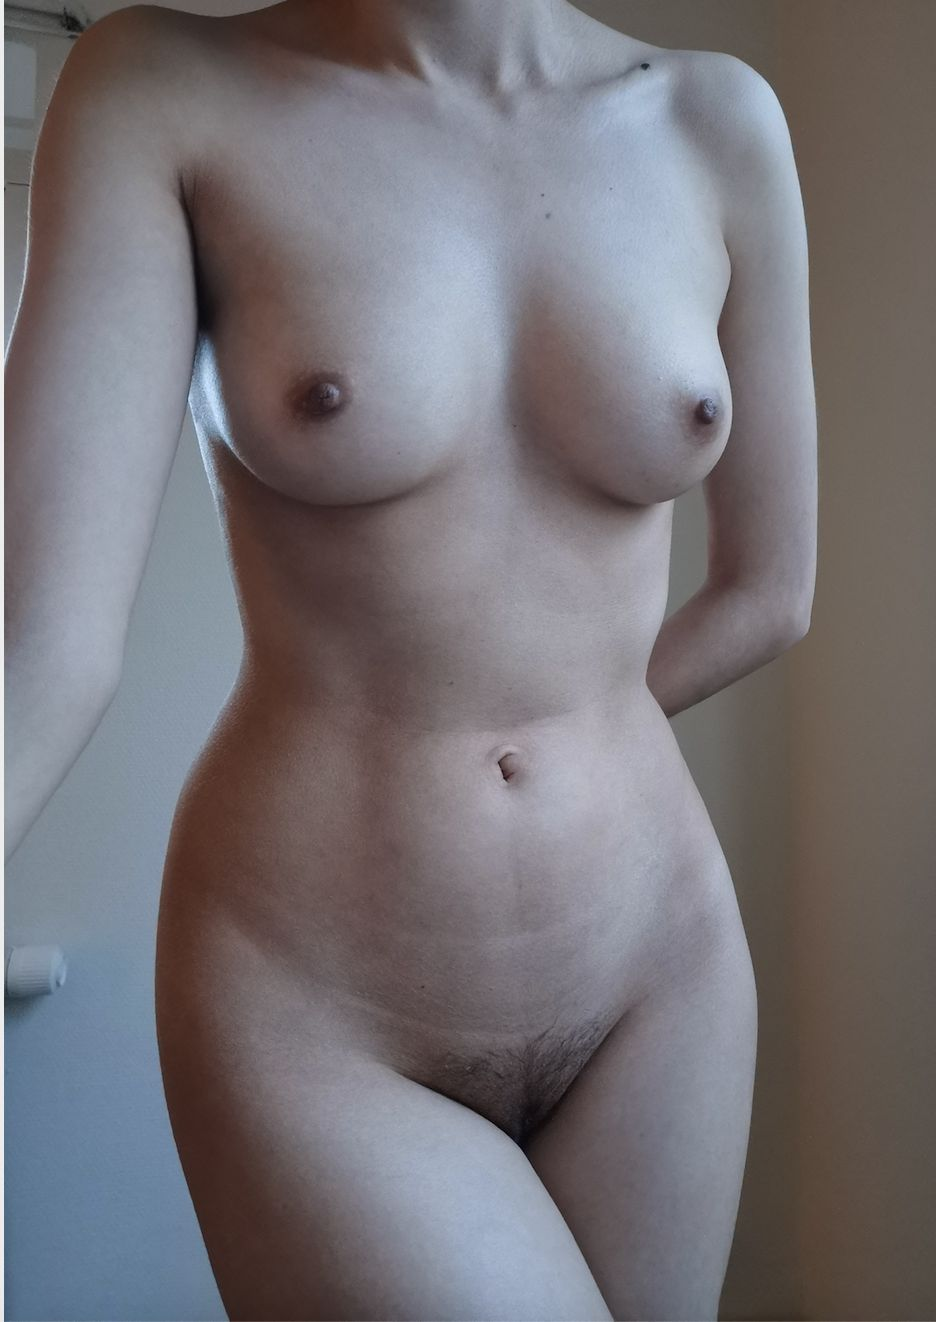 My first post ever, just me and my nude body [F]